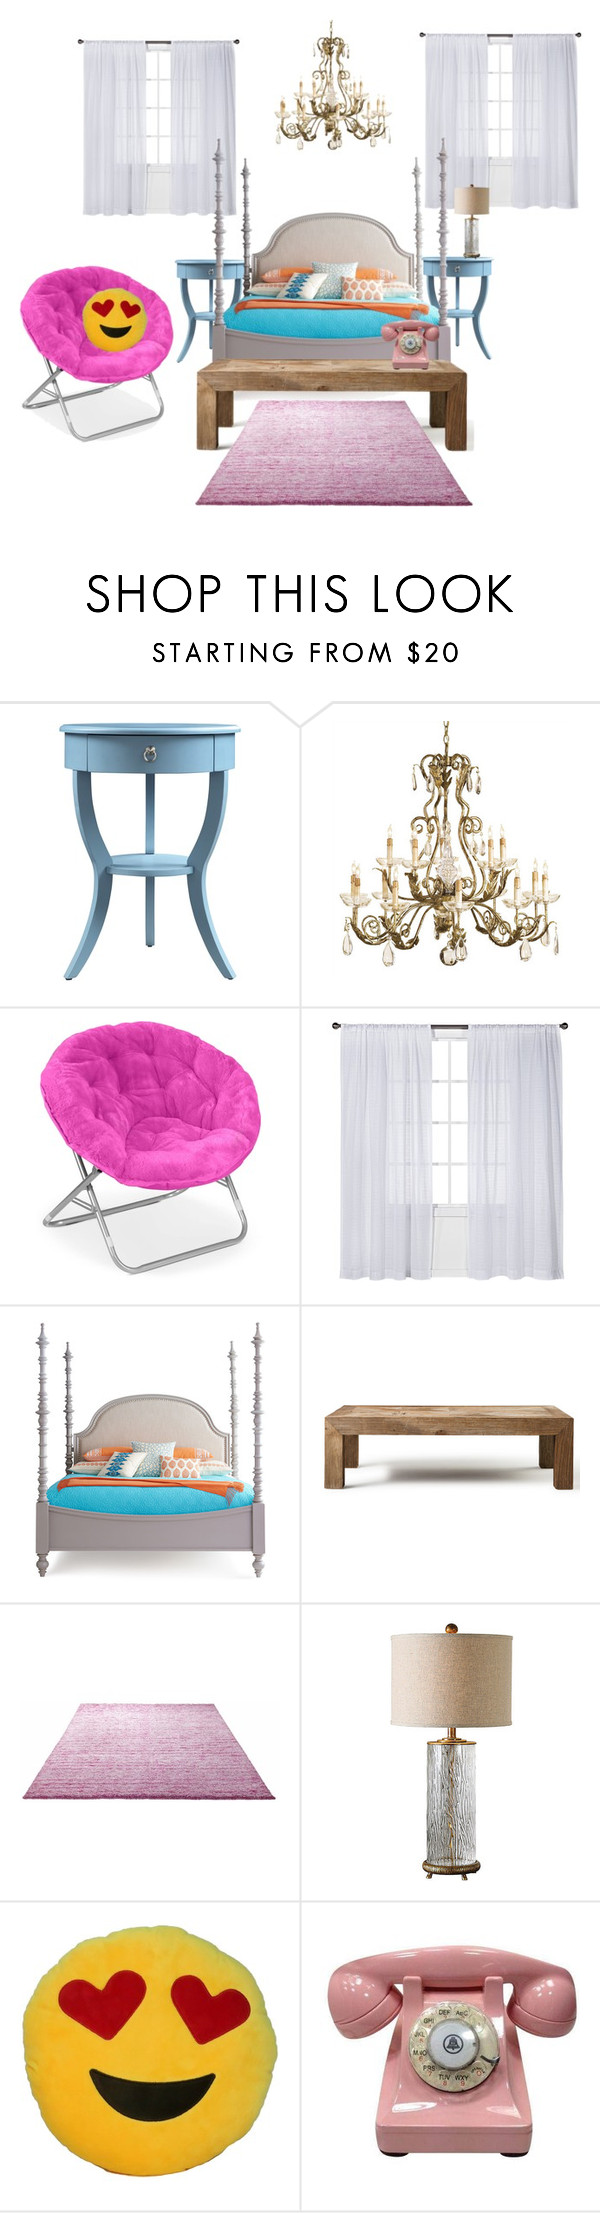 """My Bedroom"" by kayley2103 ❤ liked on Polyvore featuring interior, interiors, interior design, home, home decor, interior decorating, Currey & Company, Nate Berkus, Flamant and ESPRIT"